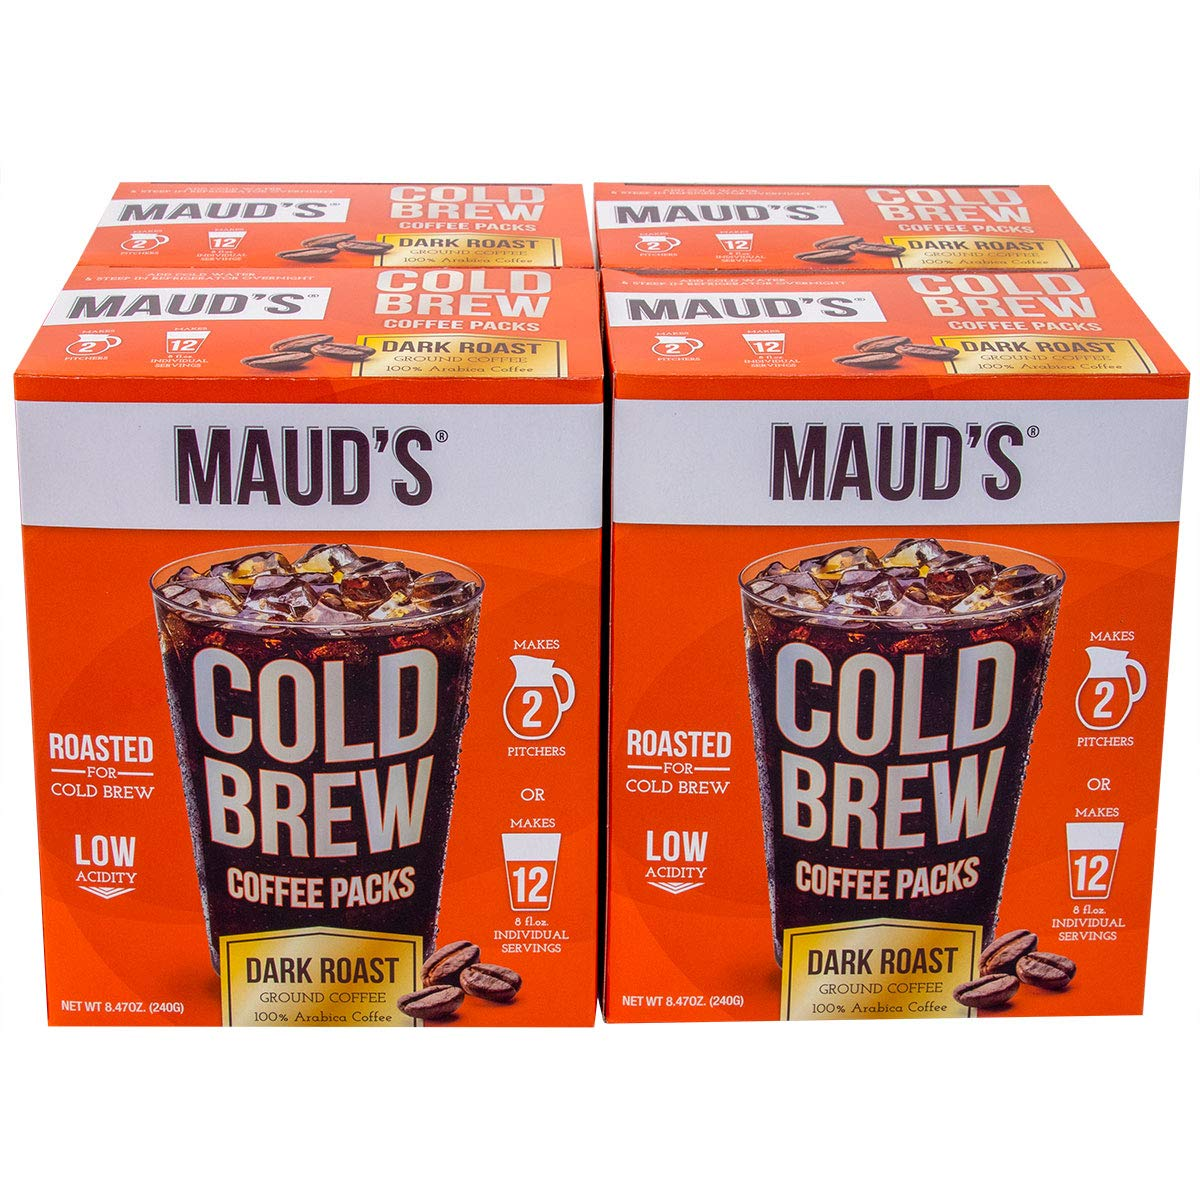 Maud's Cold Brew Coffee Filter Bags 4 Pack - Solar Energy Produced 100% Arabica Low Acid Coffee Cold Brew Packs, 16 Filters Makes 8 Pitchers Or 48 Single Serve Cups, No Cold Brew Coffee Maker Required